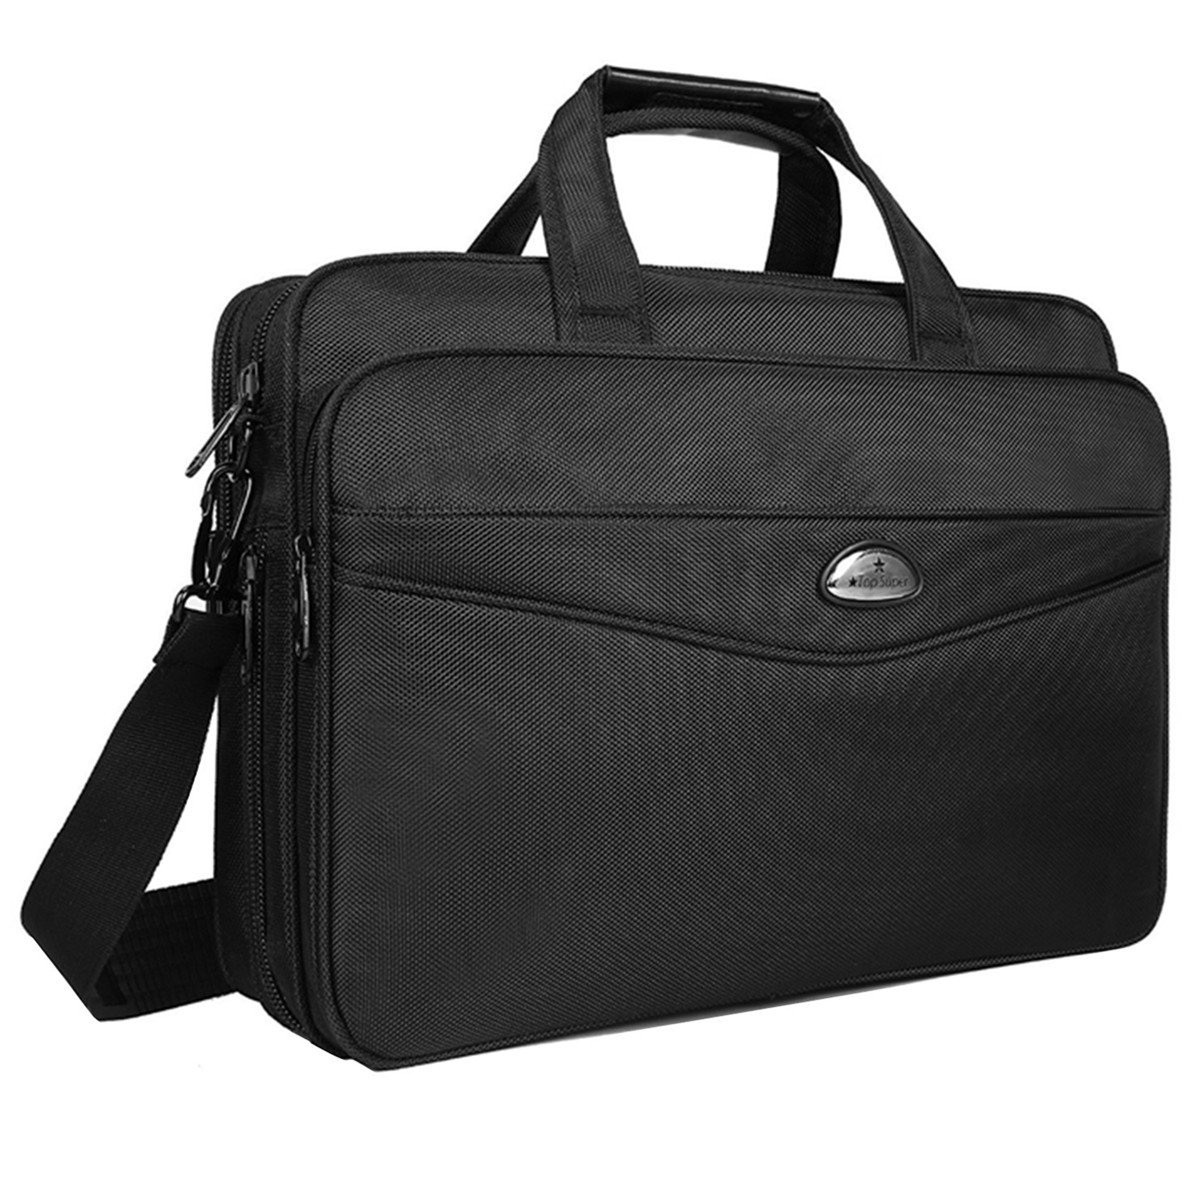 Briefcase 15.6 Inch Laptop Bag Laptop Messenger Bag, Business Office Bag for Men Women Multifunctional Laptop Shoulder Bags Fit for 15'' 15.6 Inch Acer HP Dell Lenovo Computer Notebook MacBook